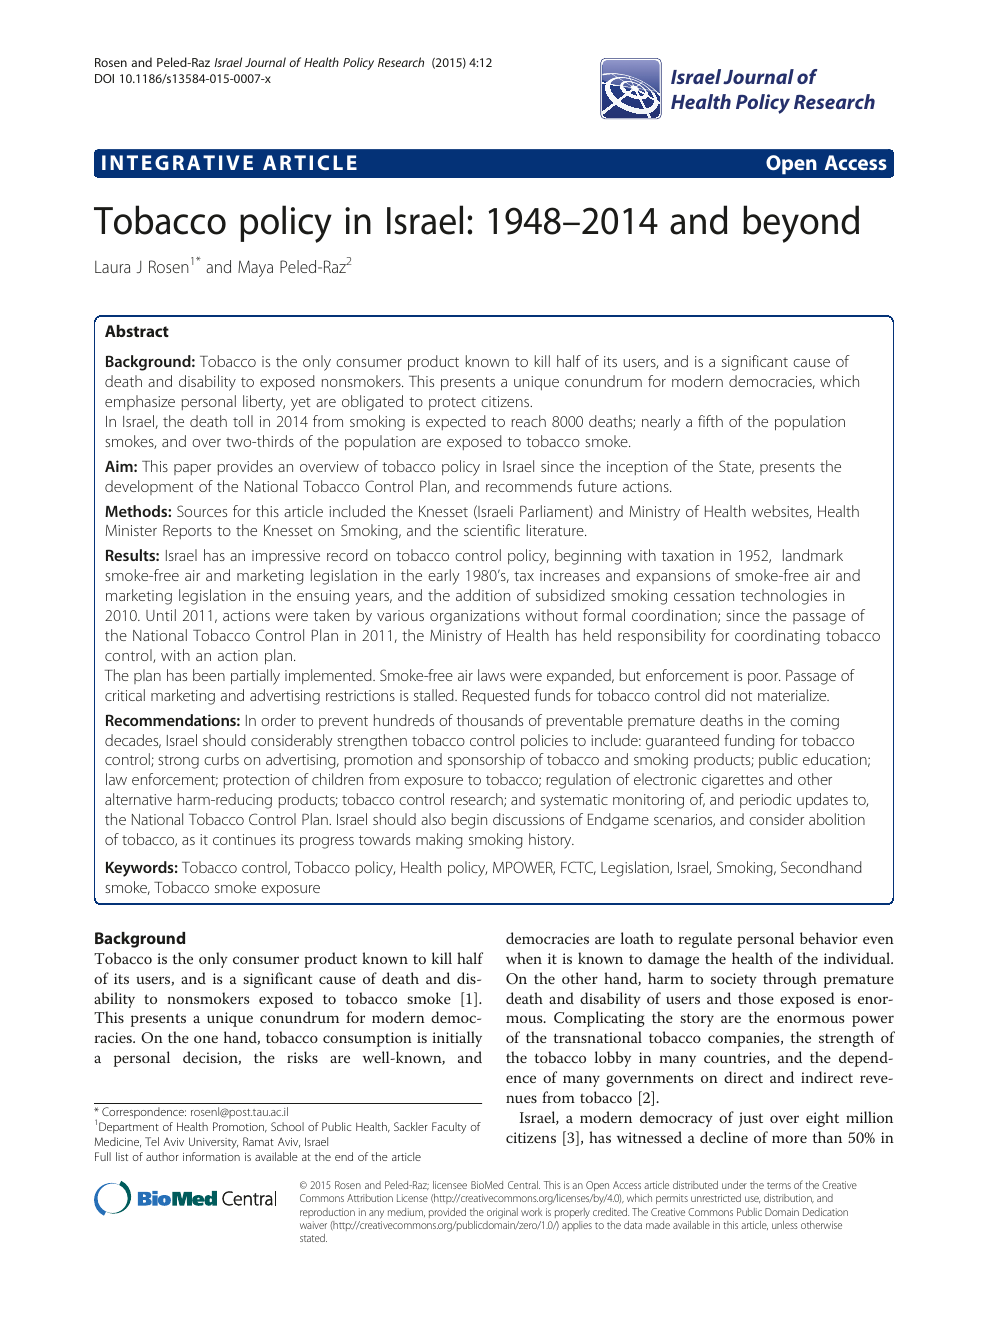 Tobacco policy in Israel: 1948–2014 and beyond – topic of